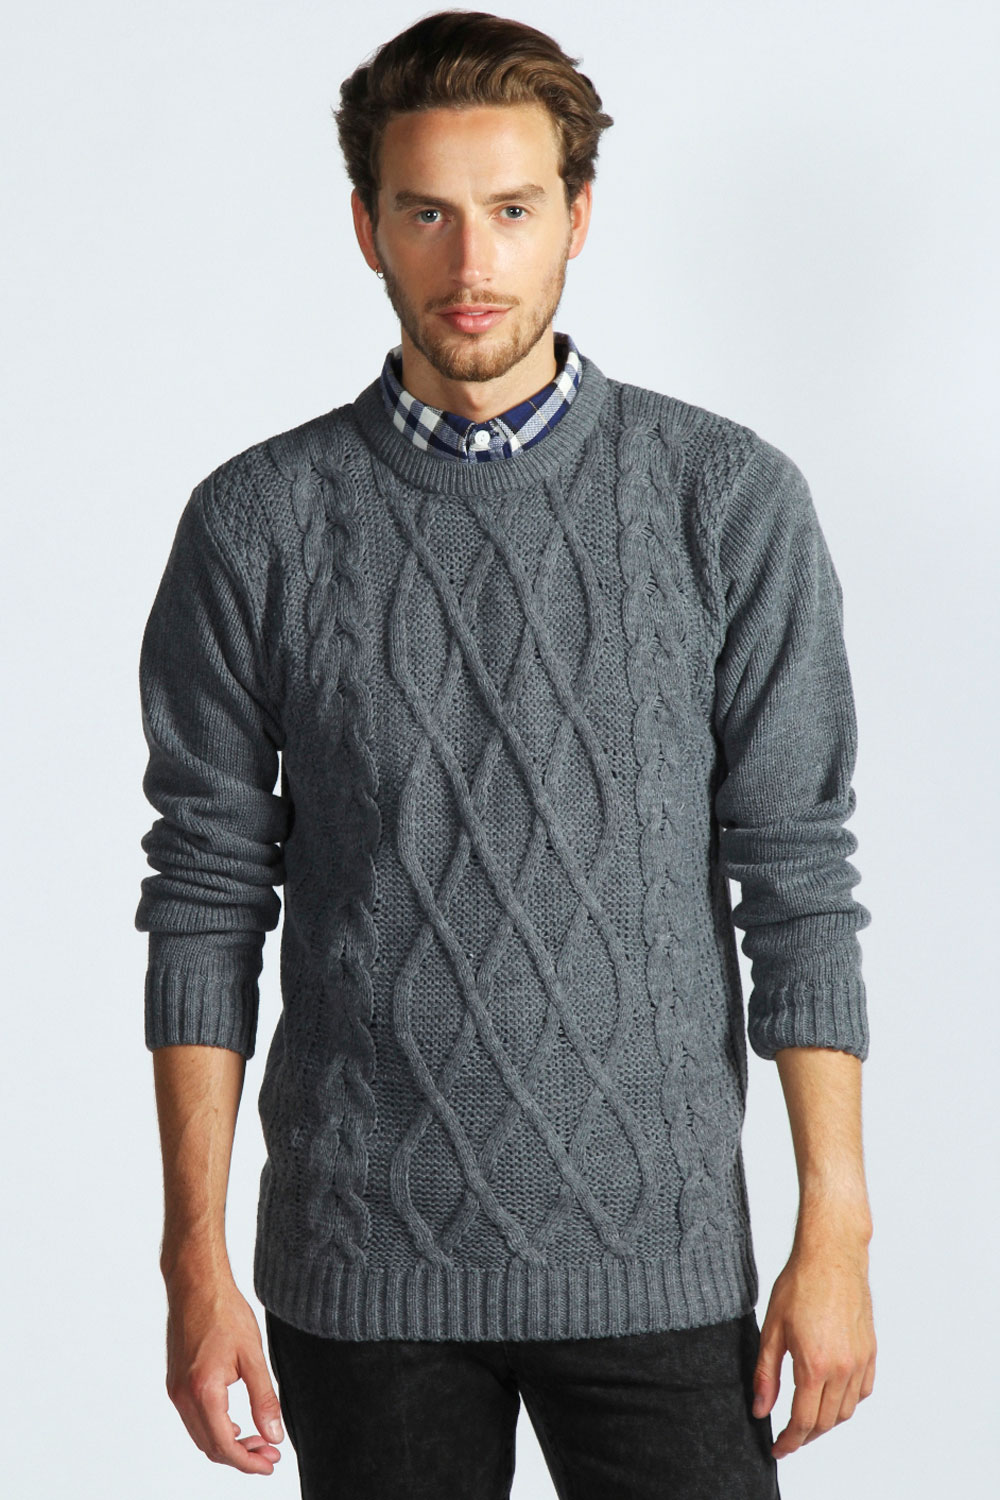 Boohoo-Mens-Cable-Crew-Jumper-In-Charcoal